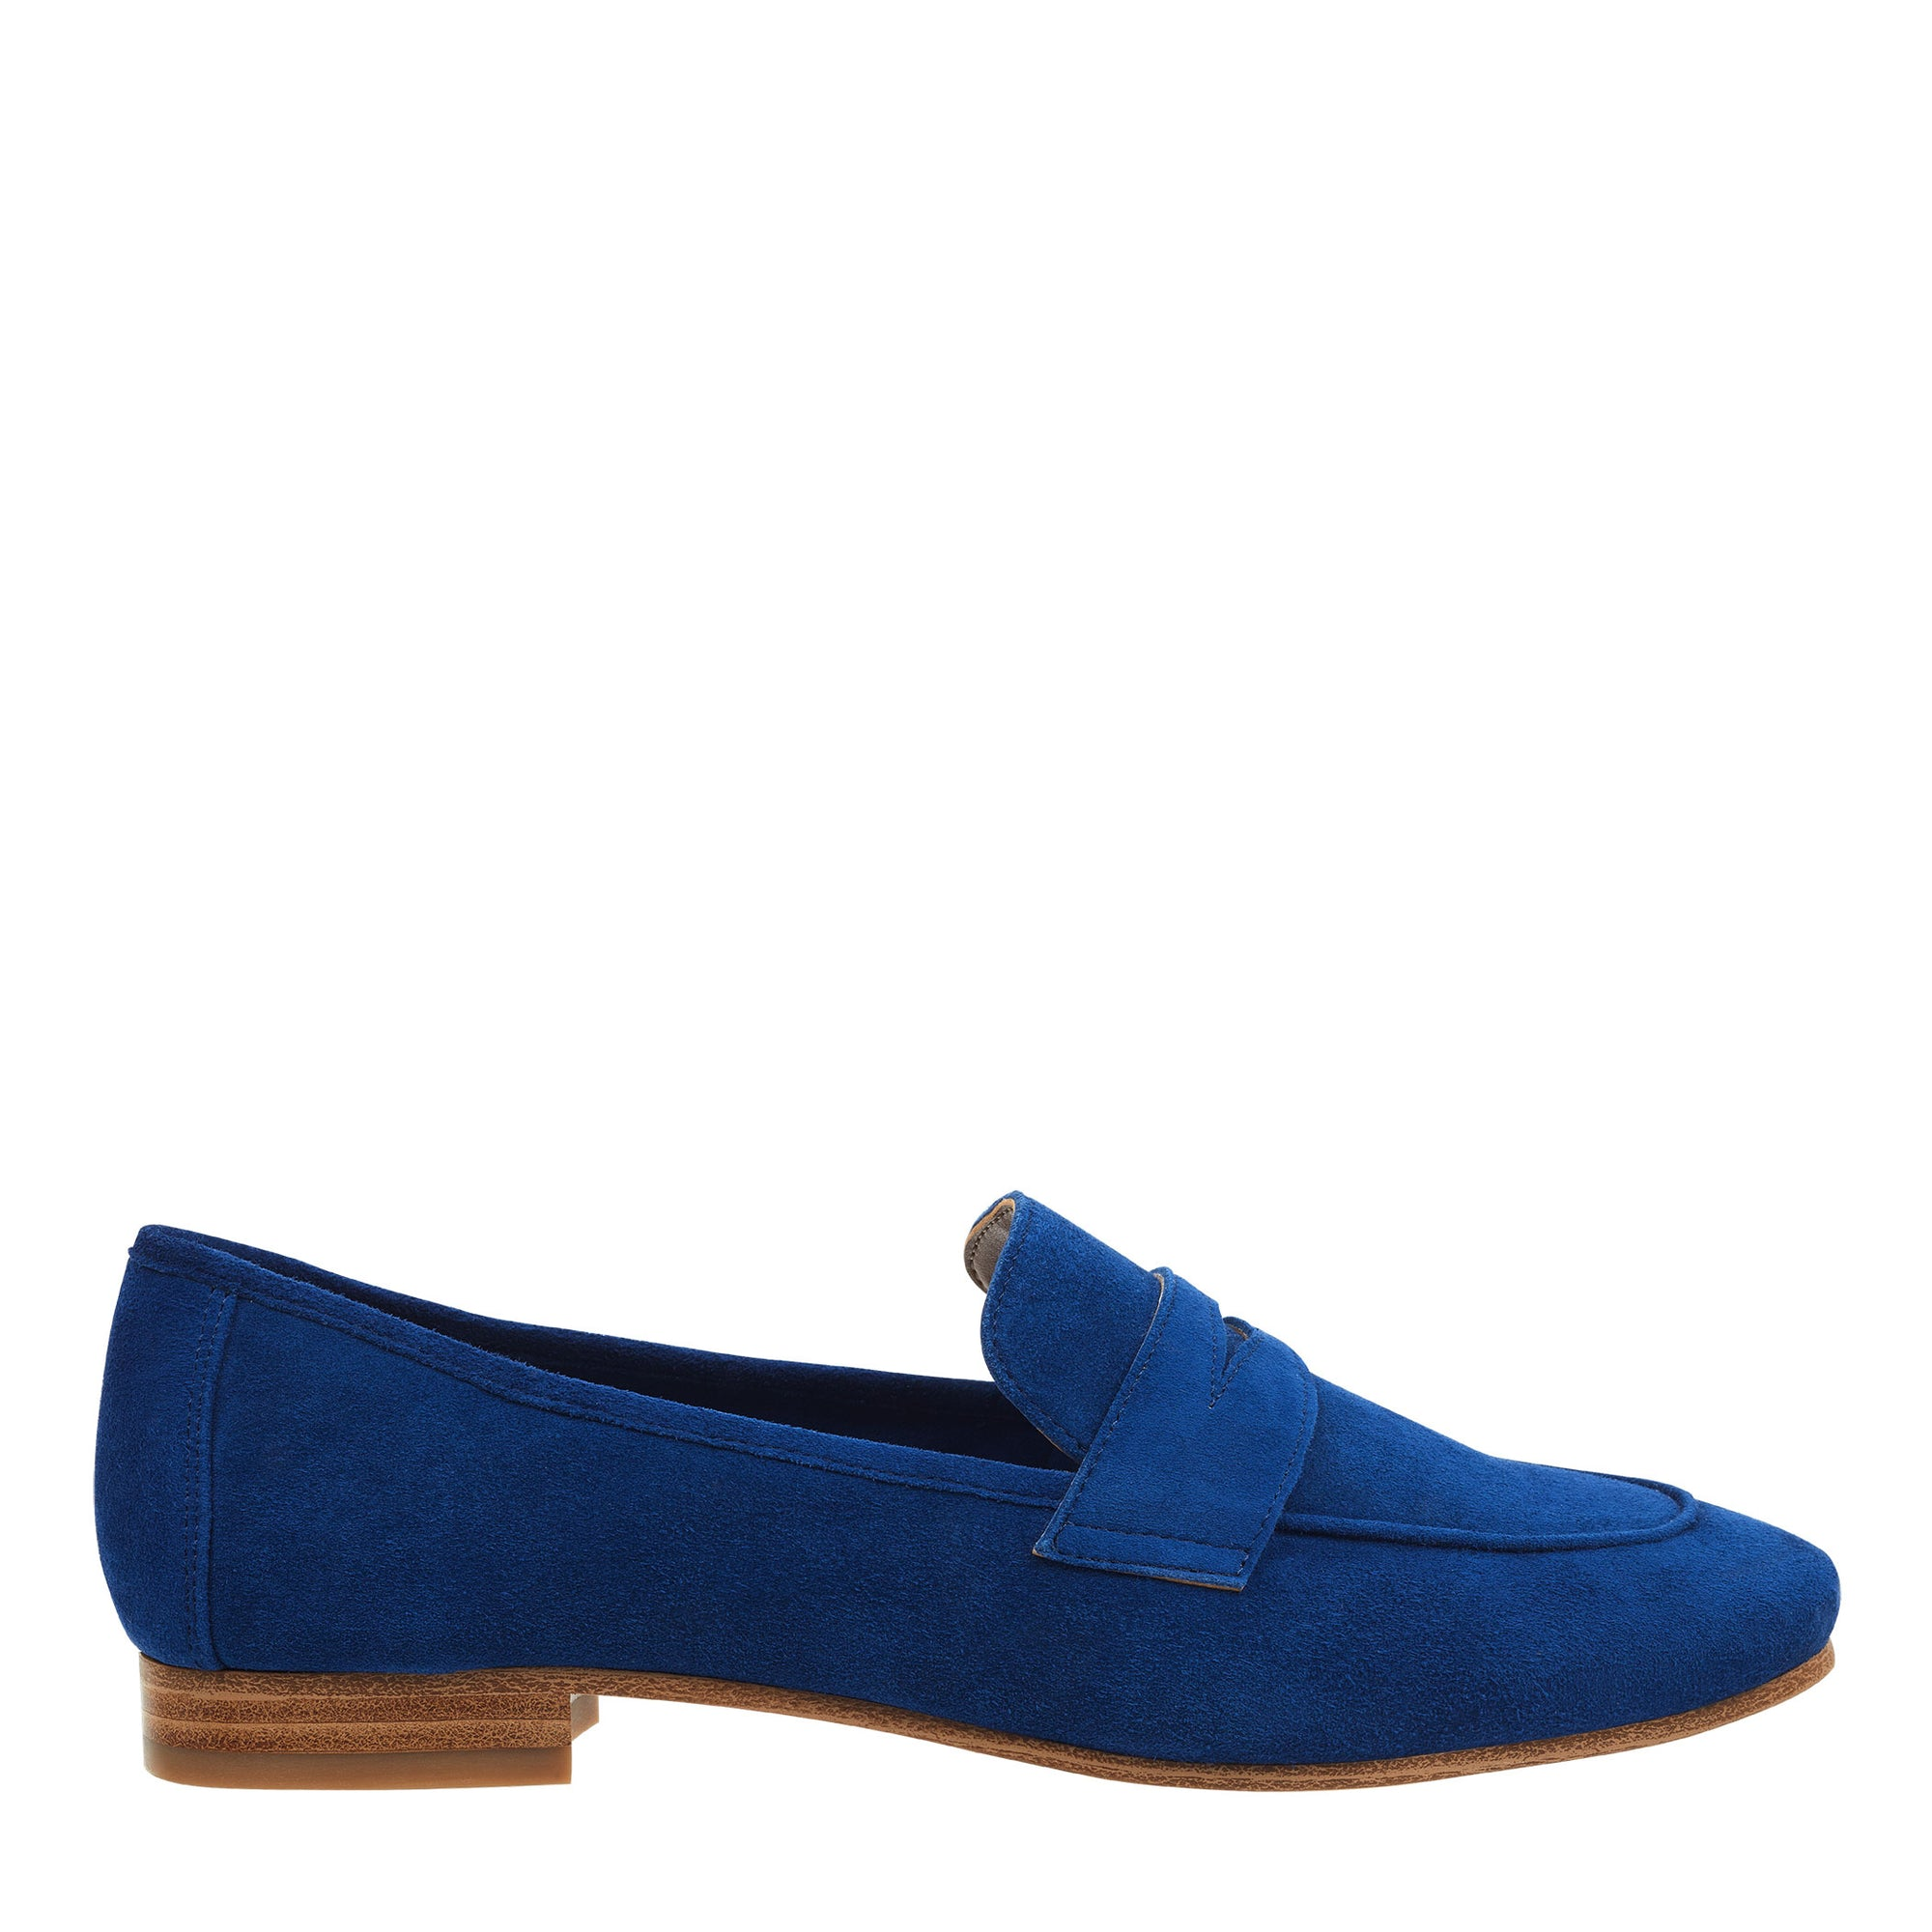 chang-loafer-in-blue-suede